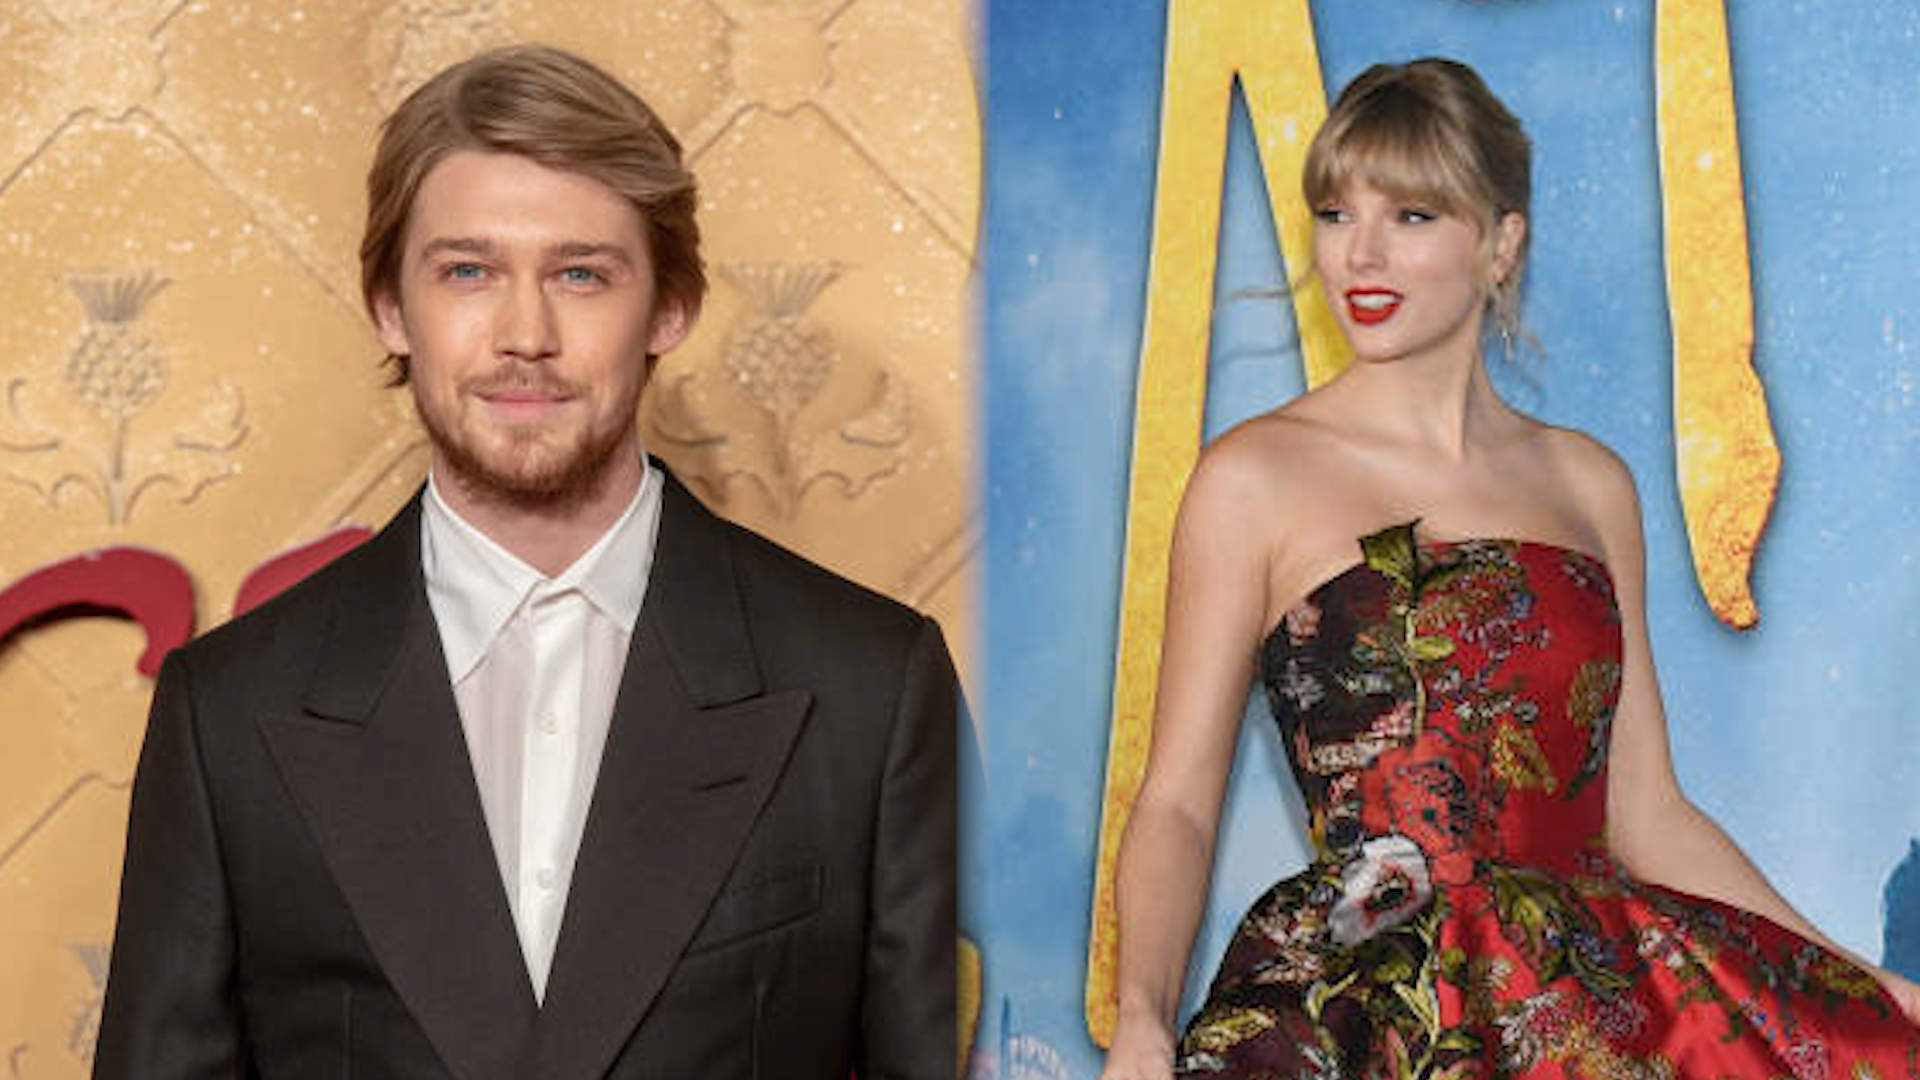 Joe Alwyn 'ignores' gossip about his relationship with Taylor Swift